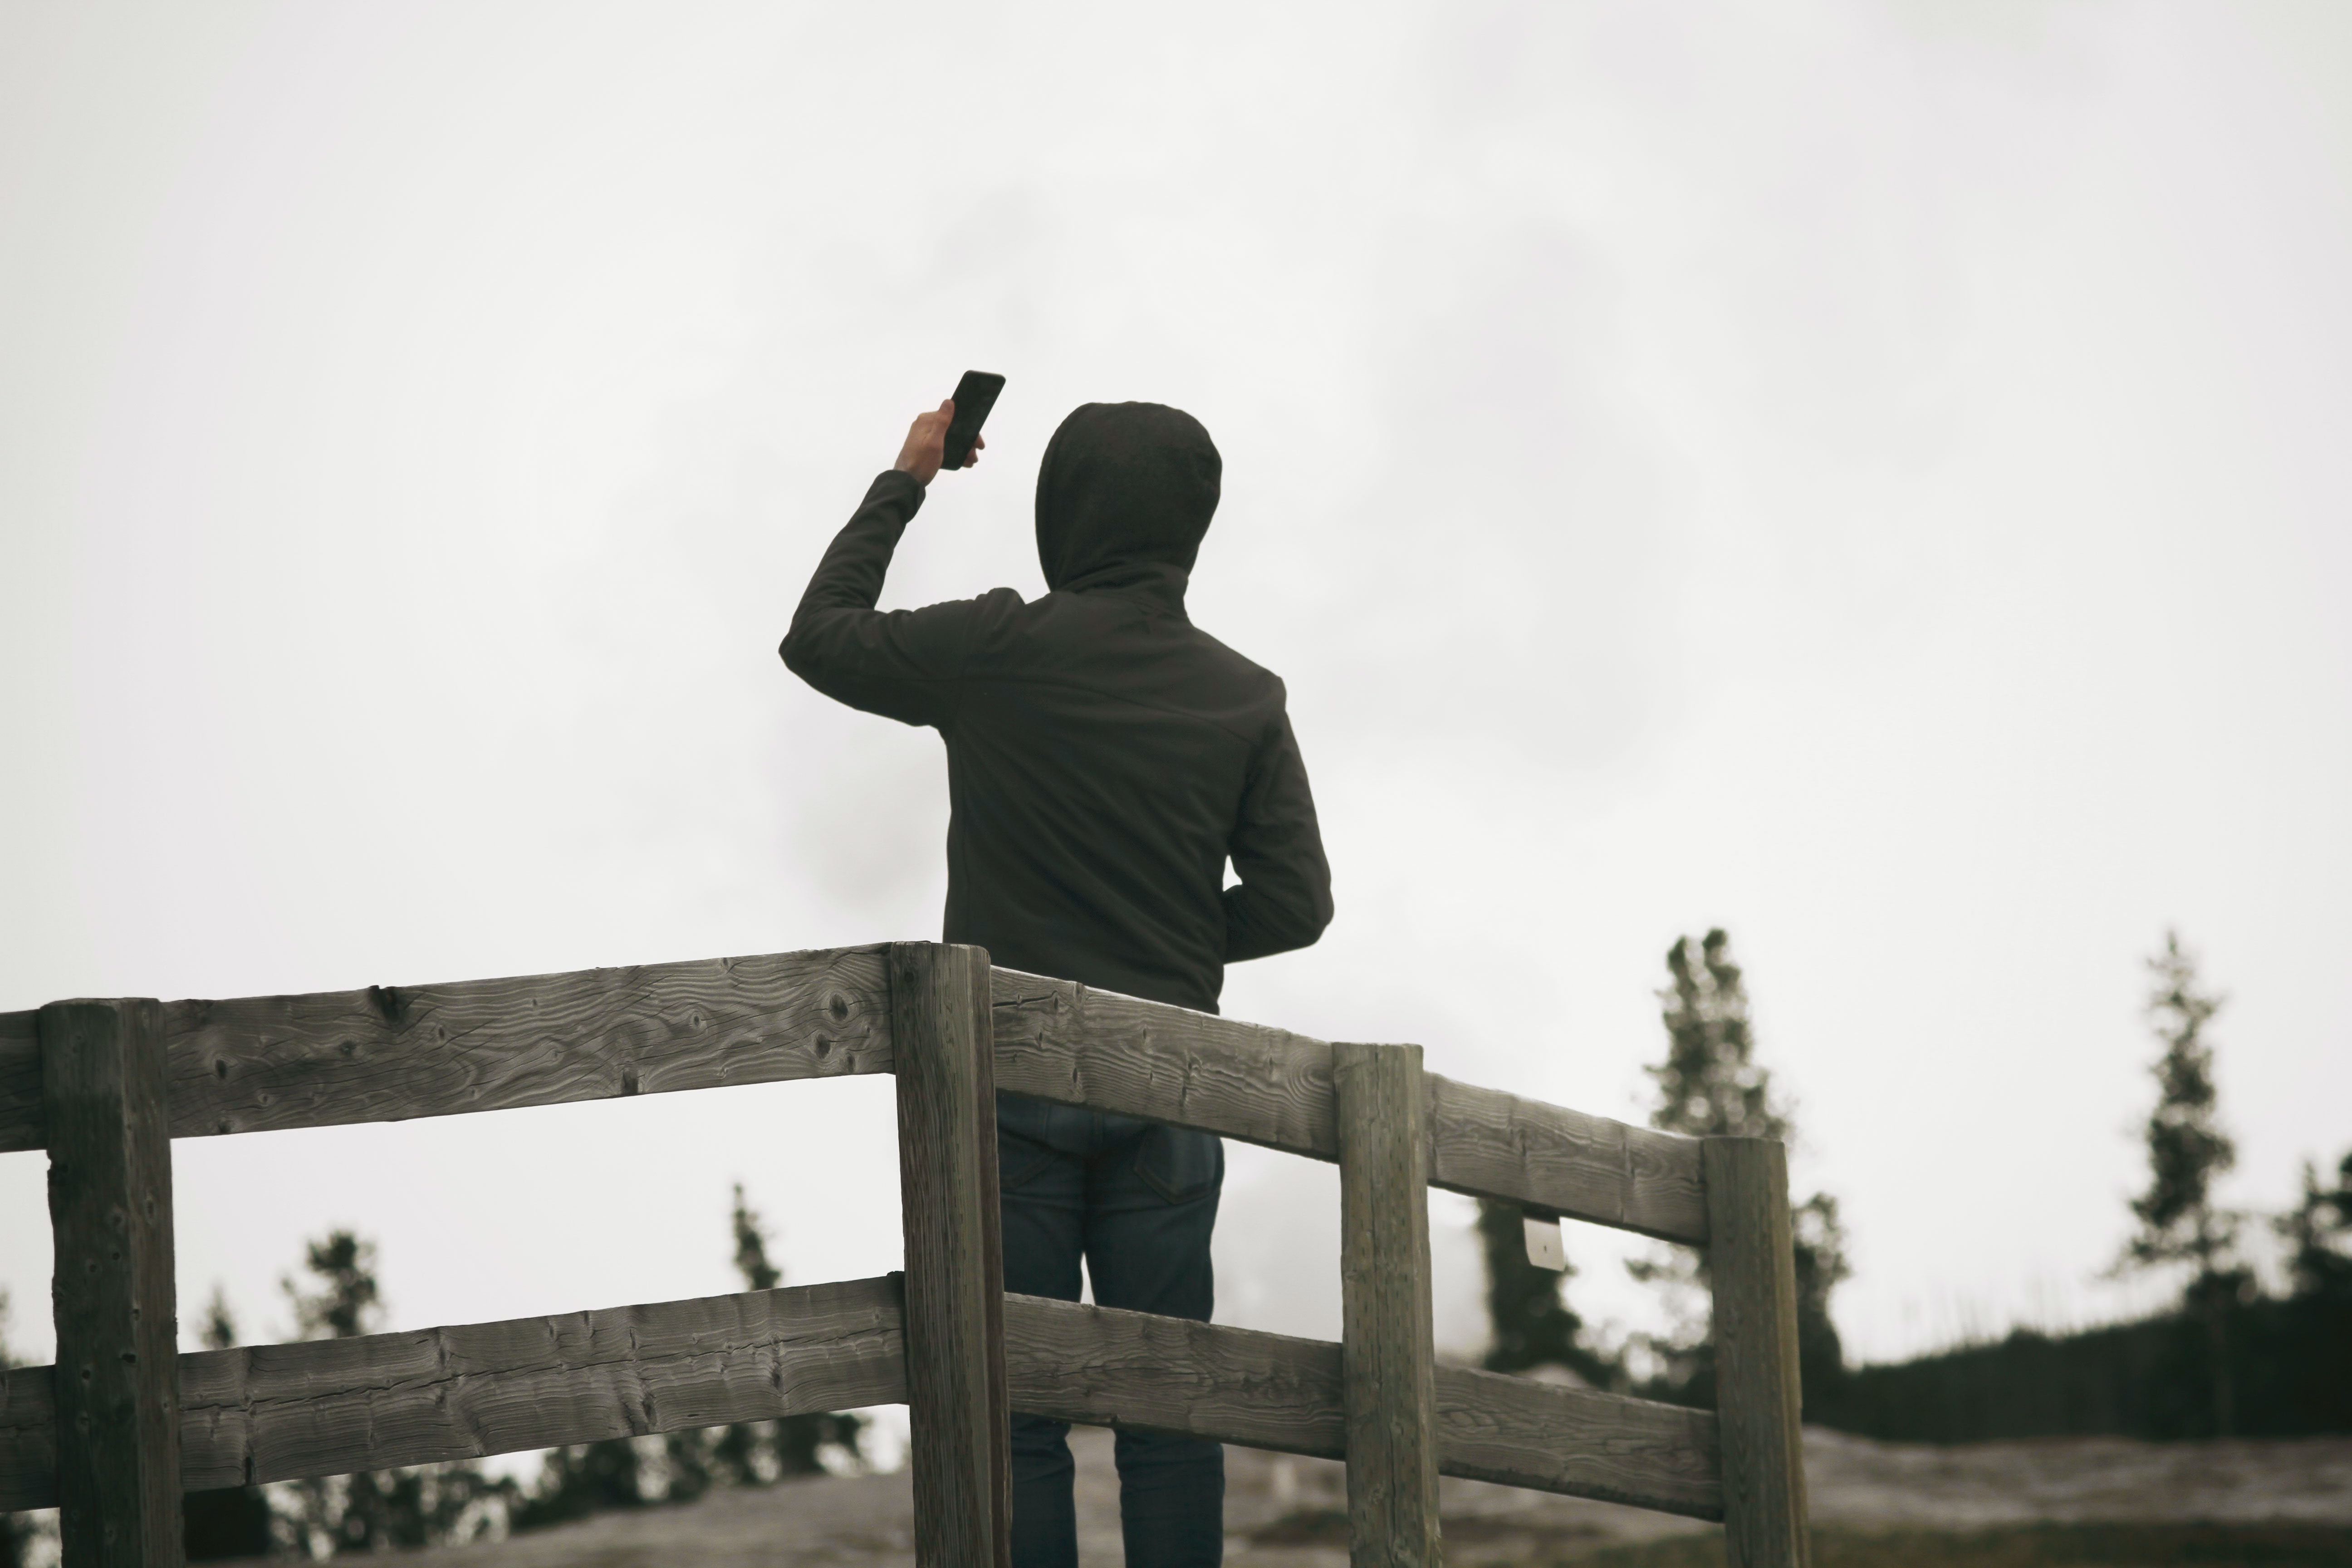 A man in a hoodie faces away by a wooden fence, taking a selfie